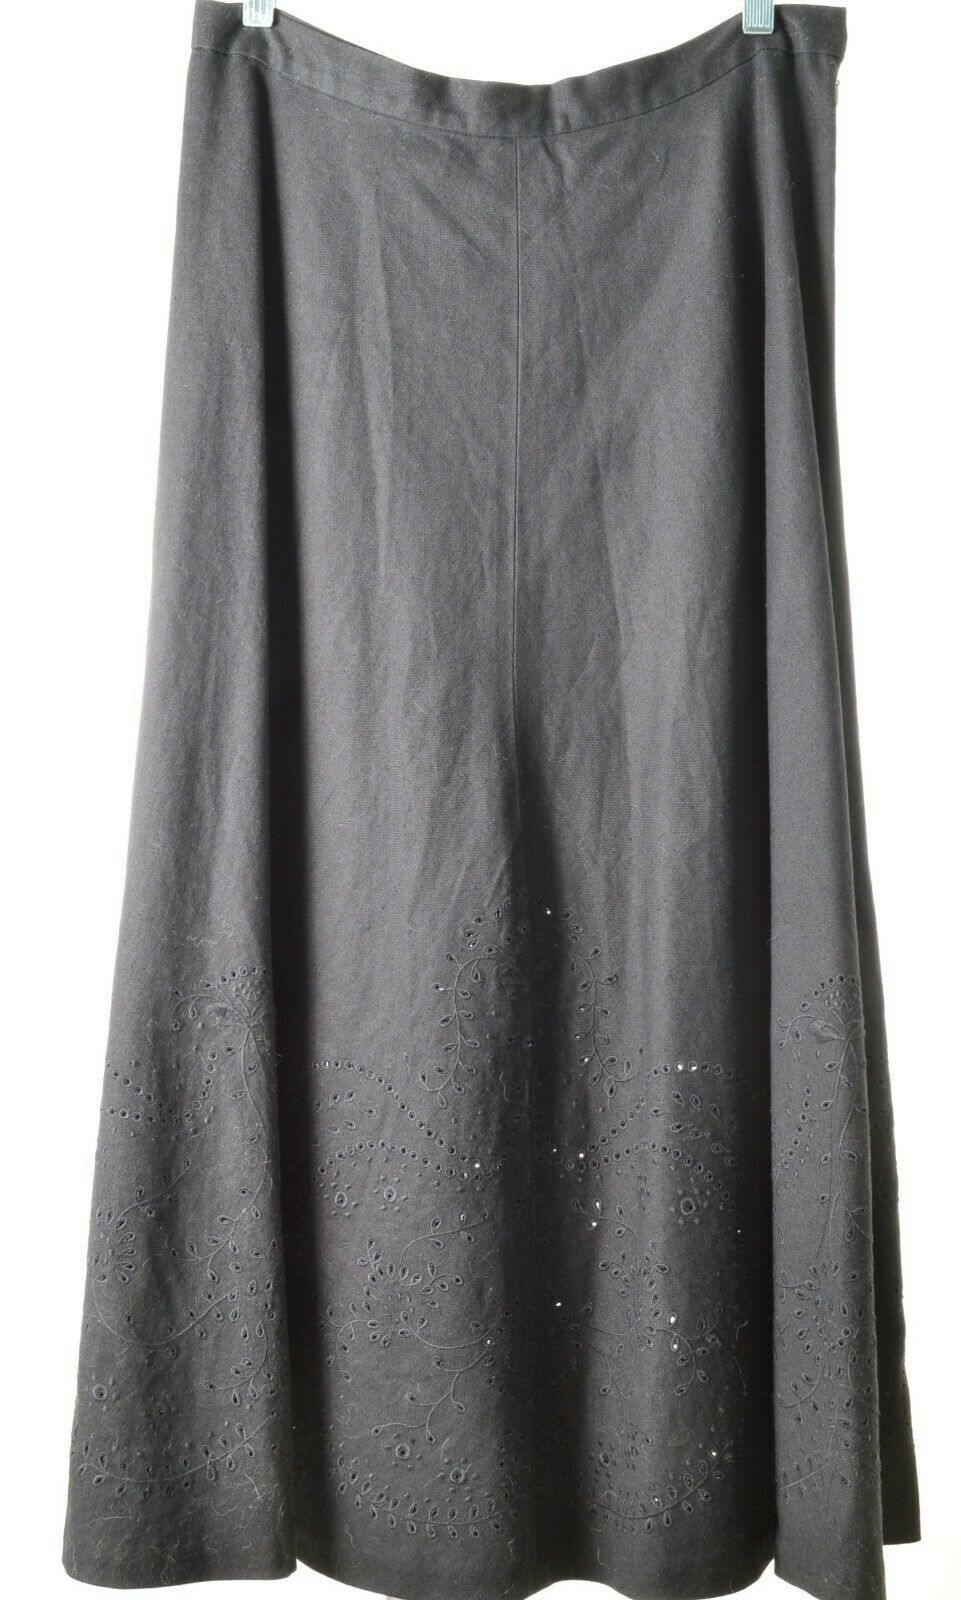 Primary image for Ralph Lauren skirt SZ 8 full circle black linen eyelet embroidery